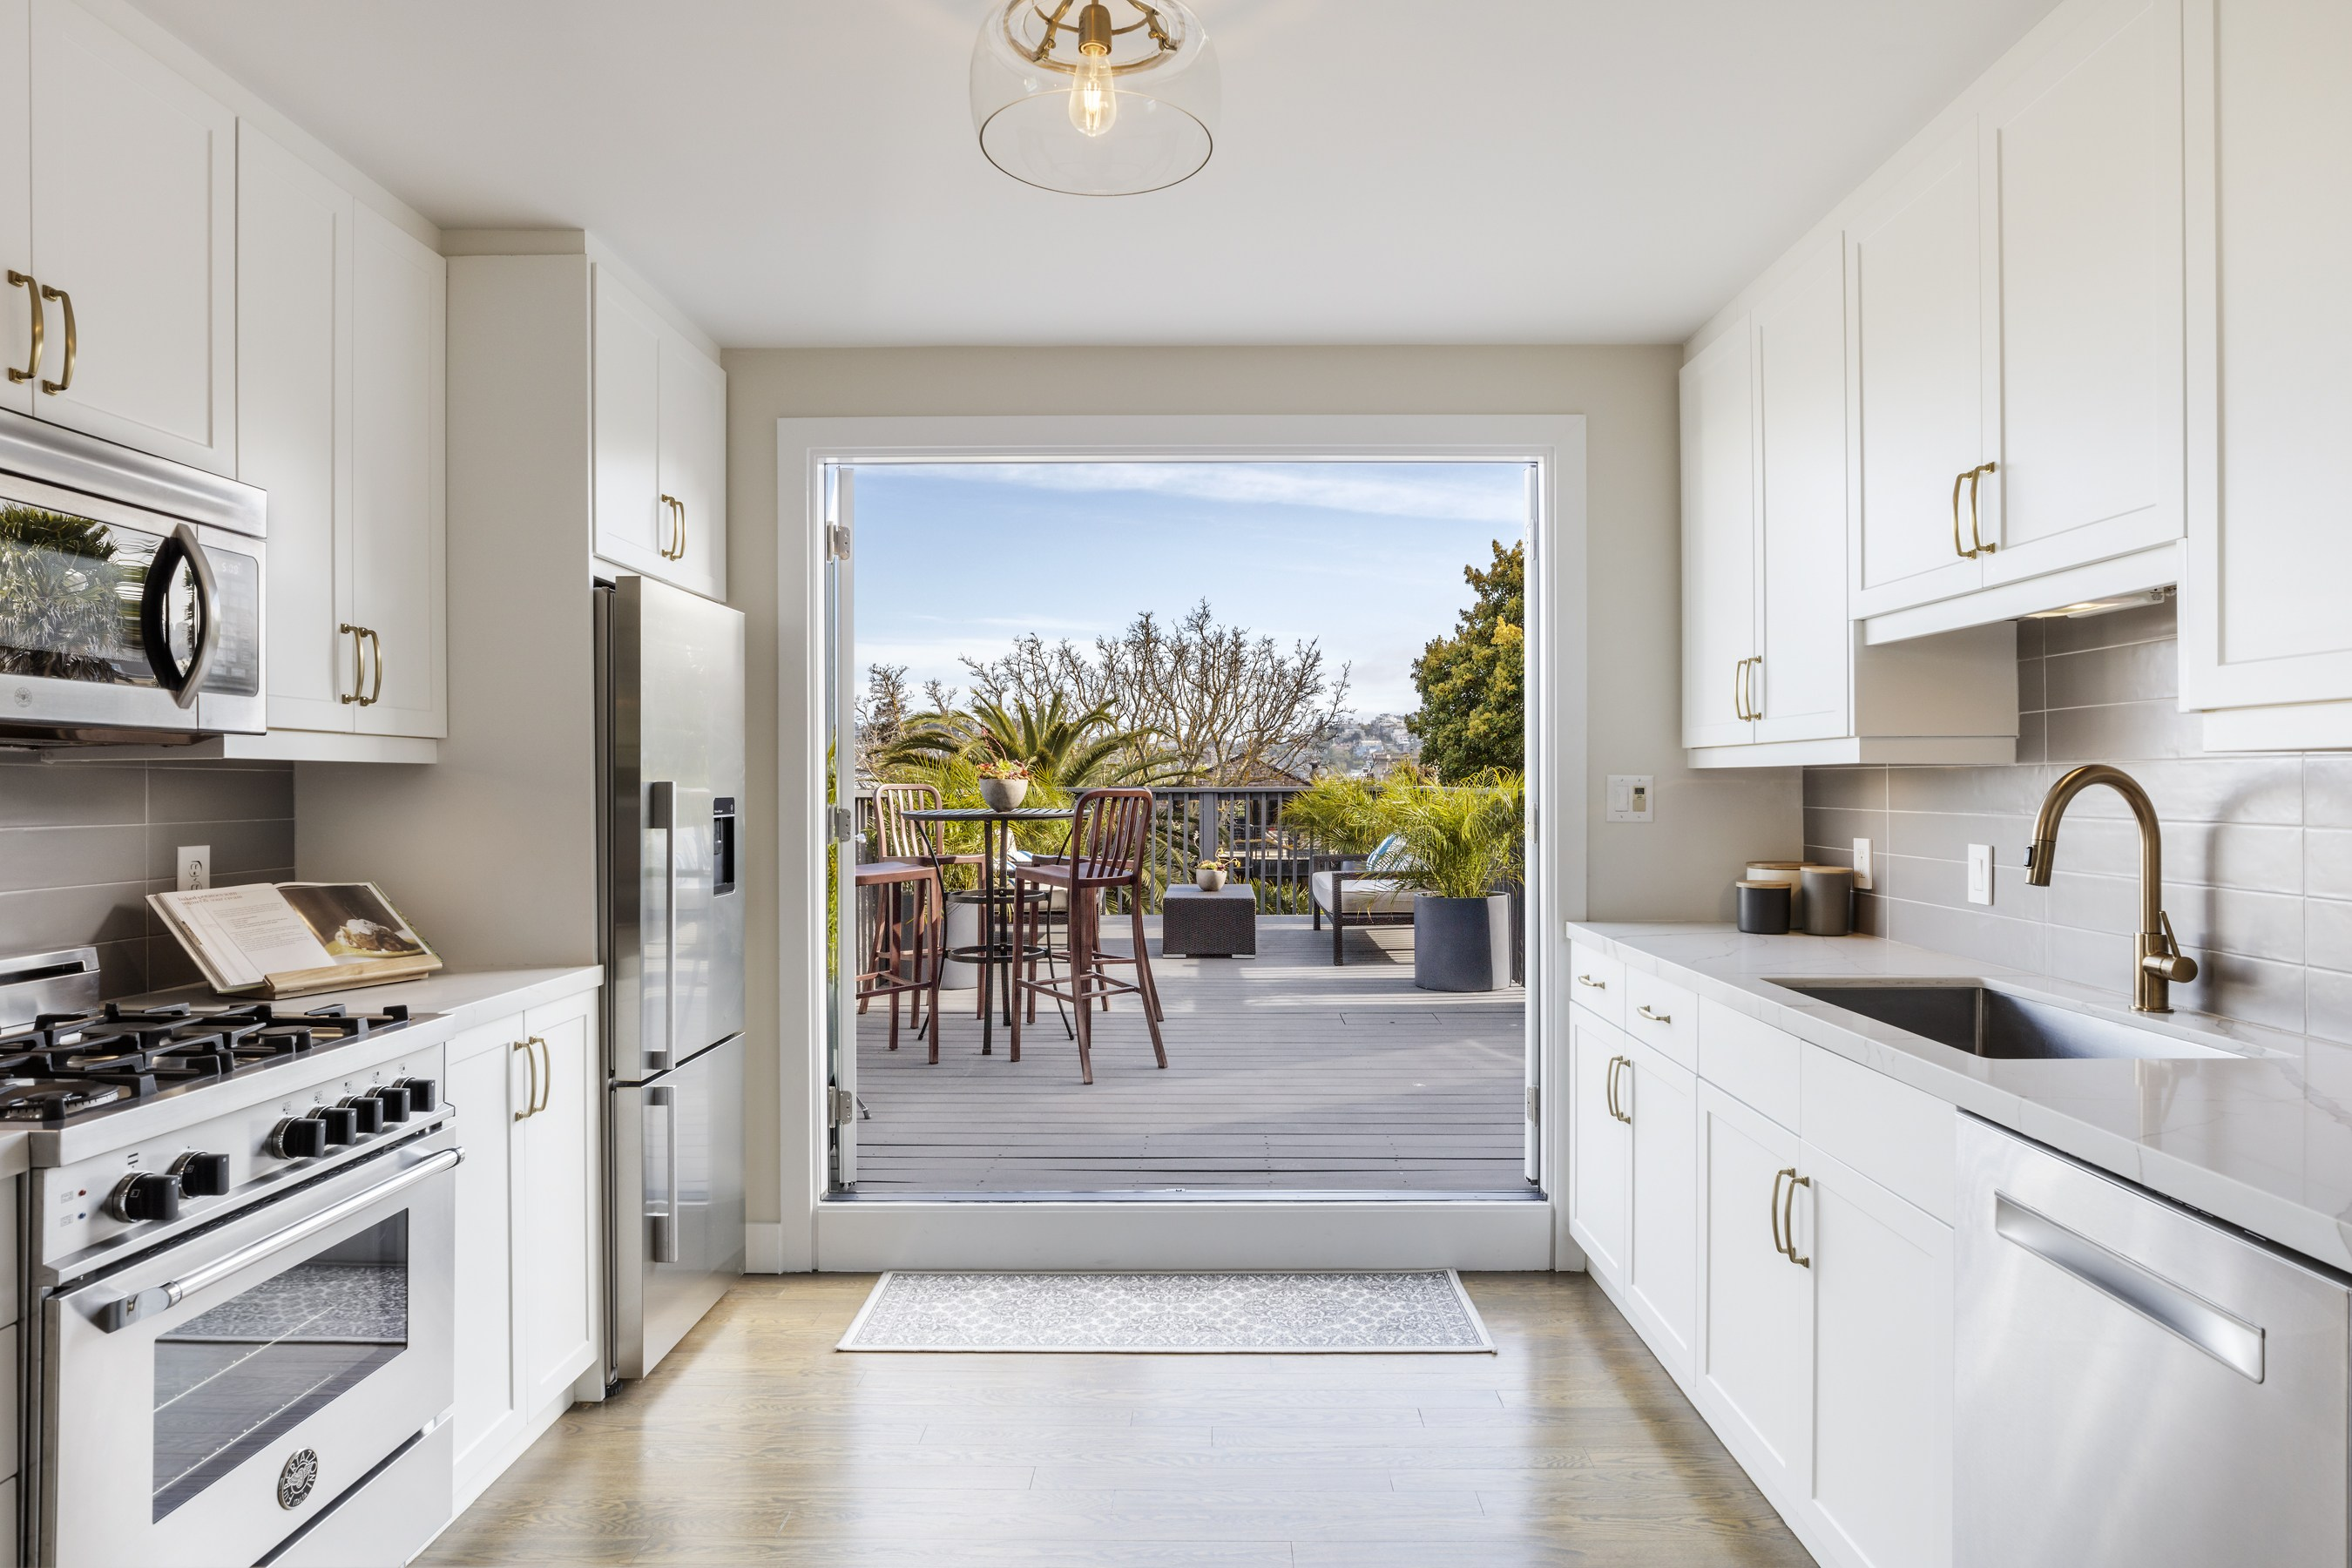 For Sale | 973a 14th St. | Duboce Triangle | $1,349,000